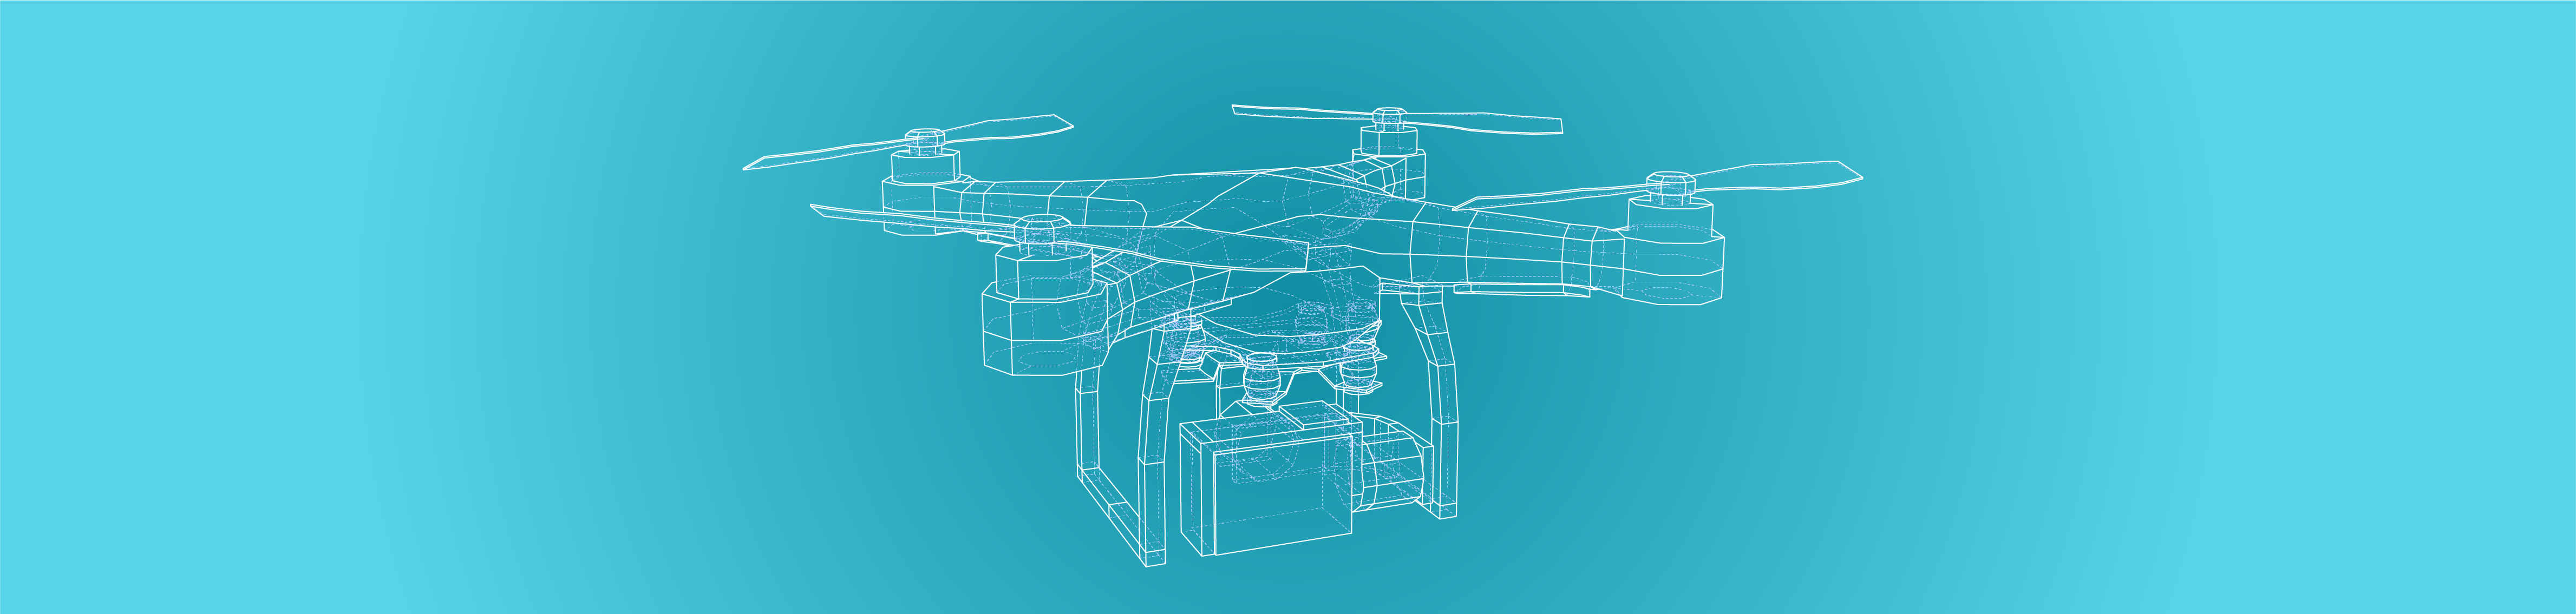 Drone Outline